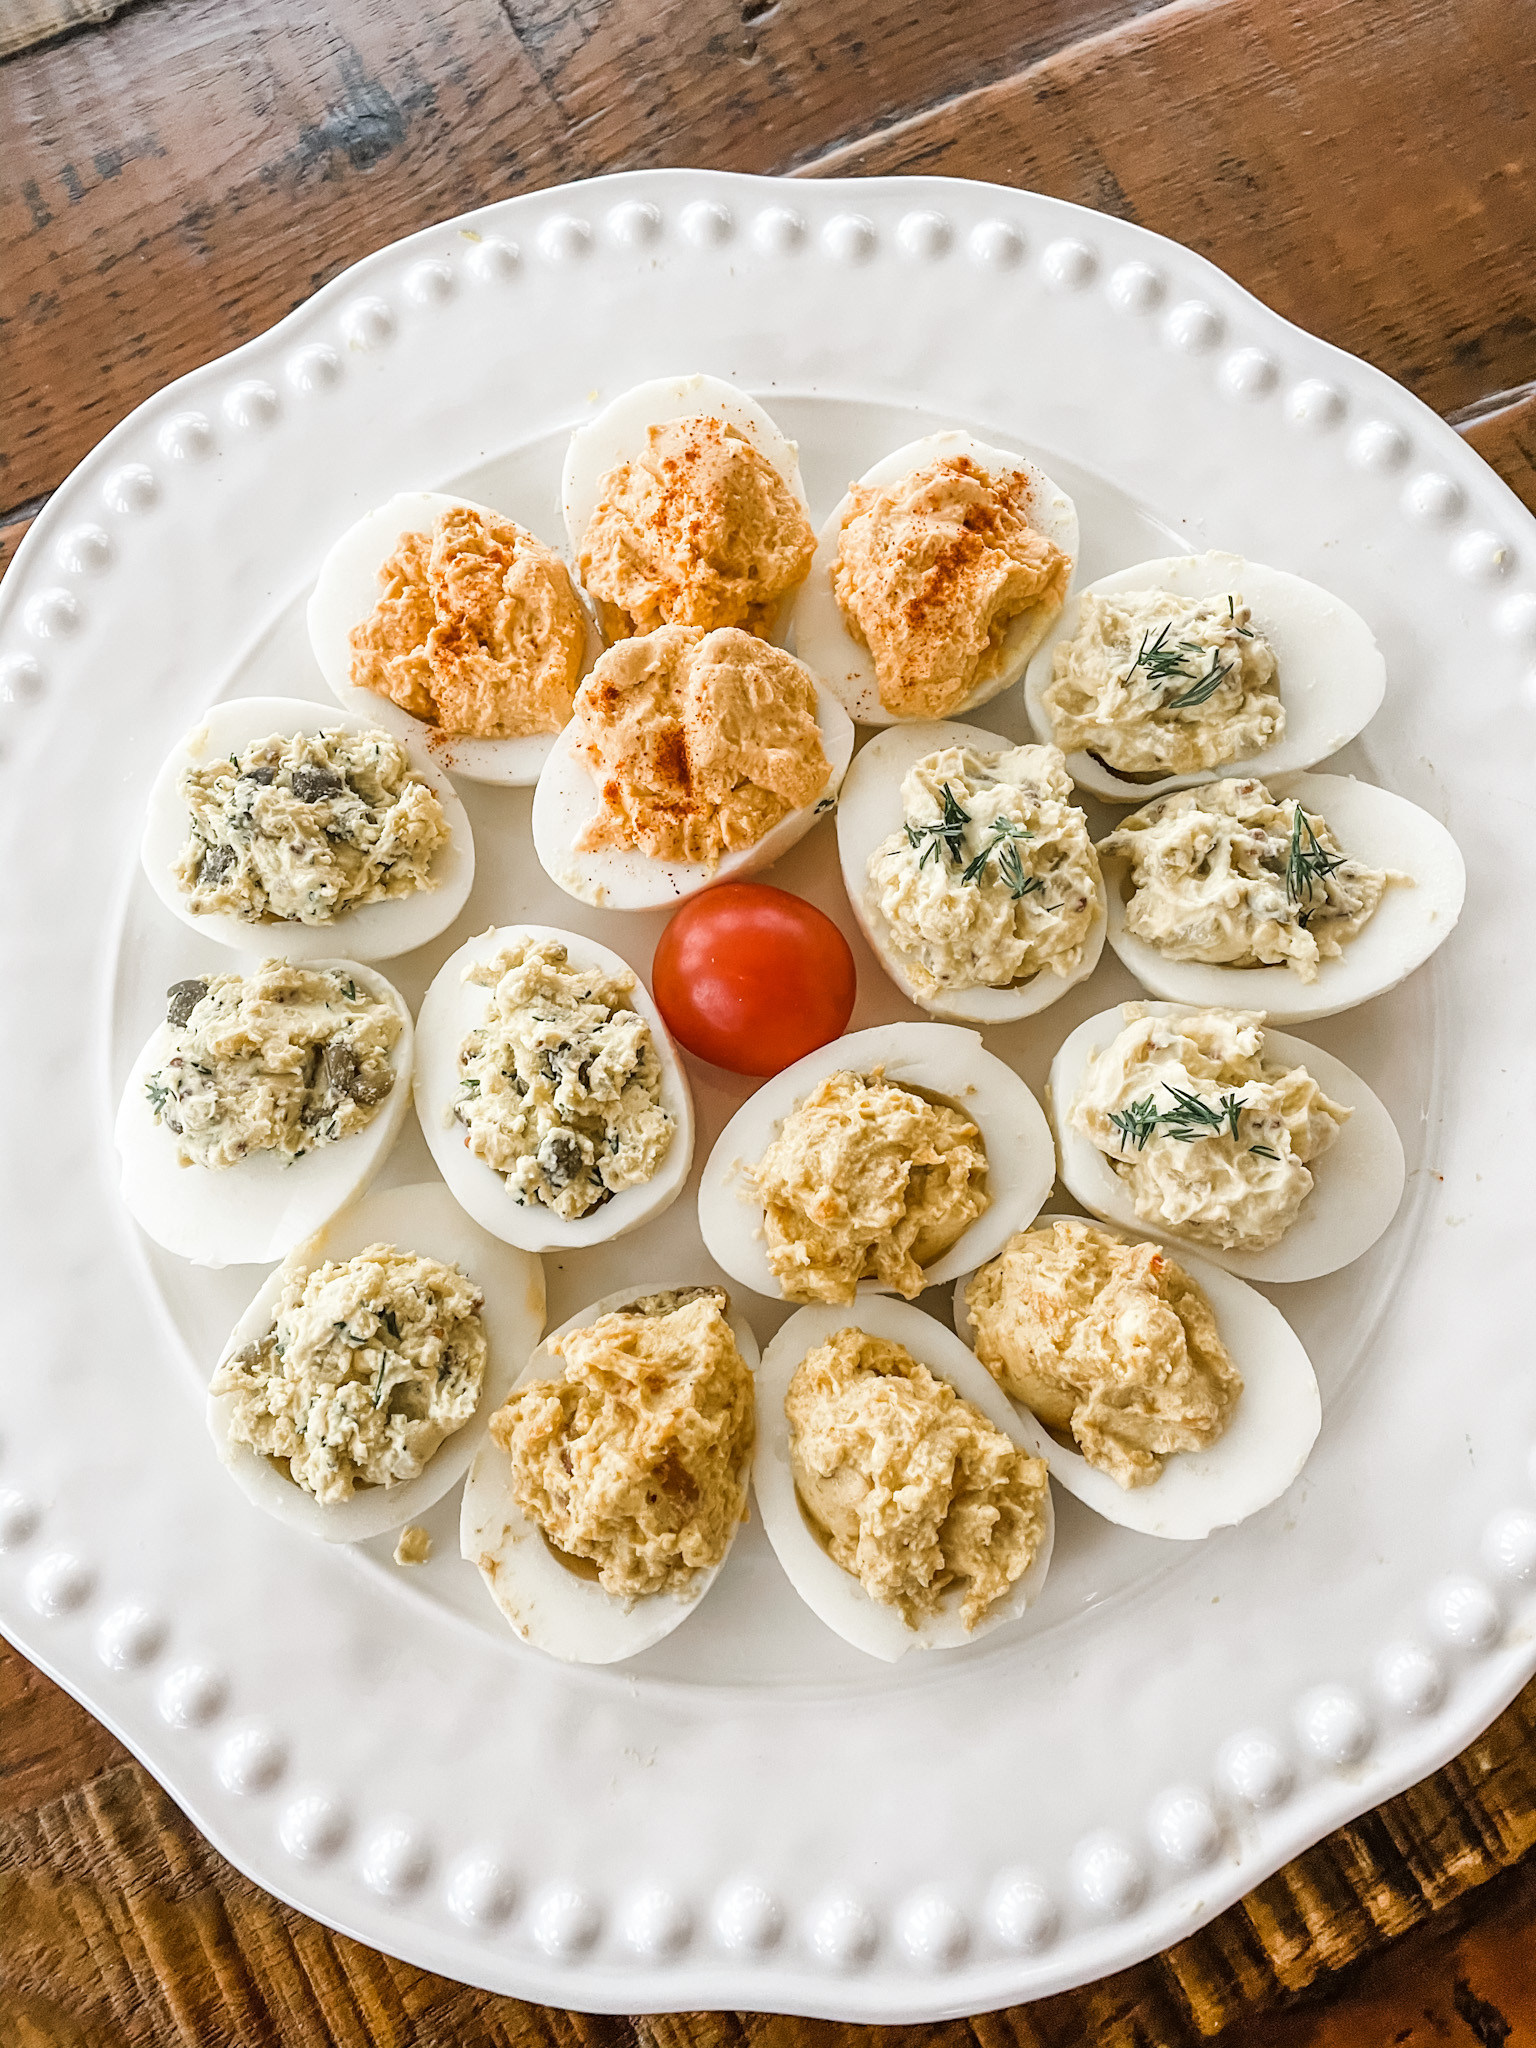 All four variations of the lighter deviled eggs on a white plate.